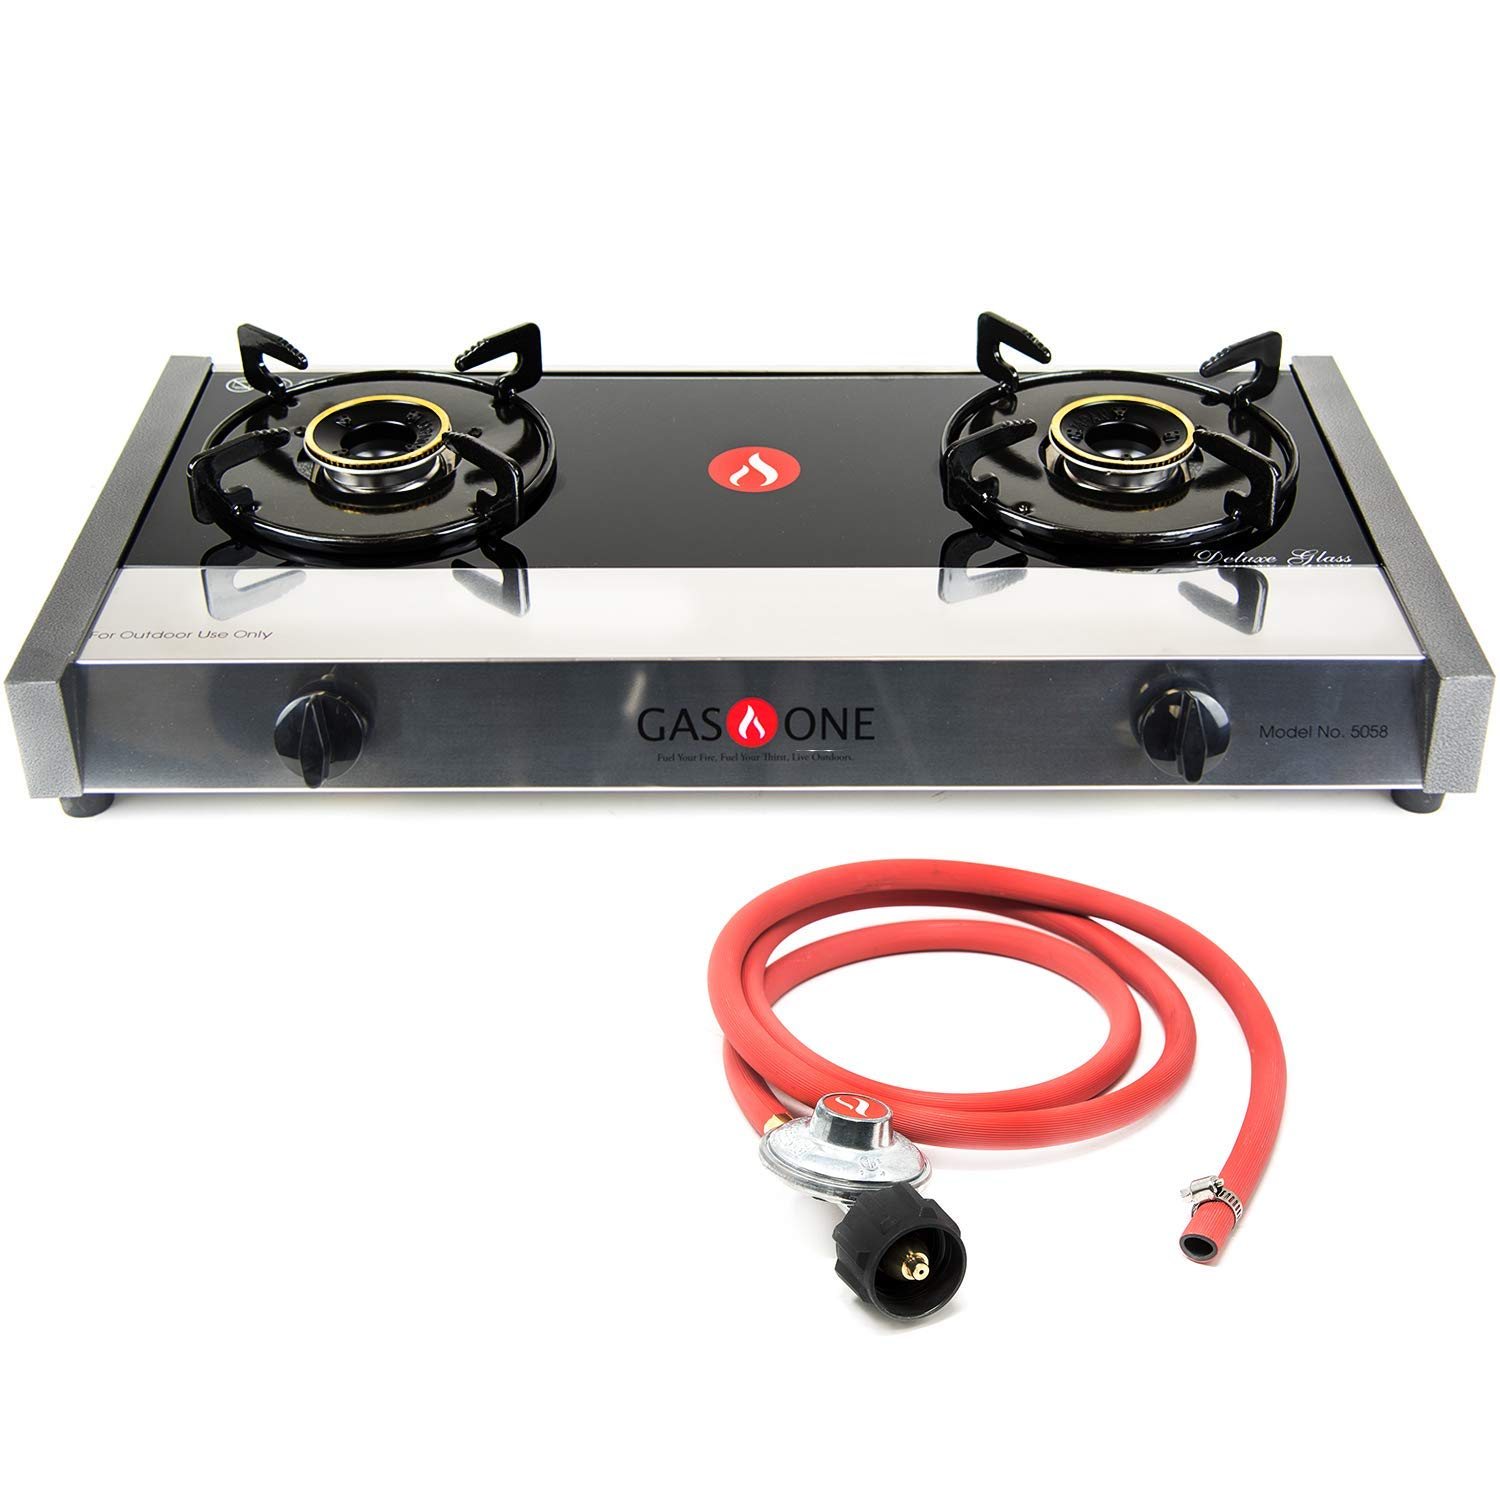 Gas One 5058 Premium Gas Cooktop